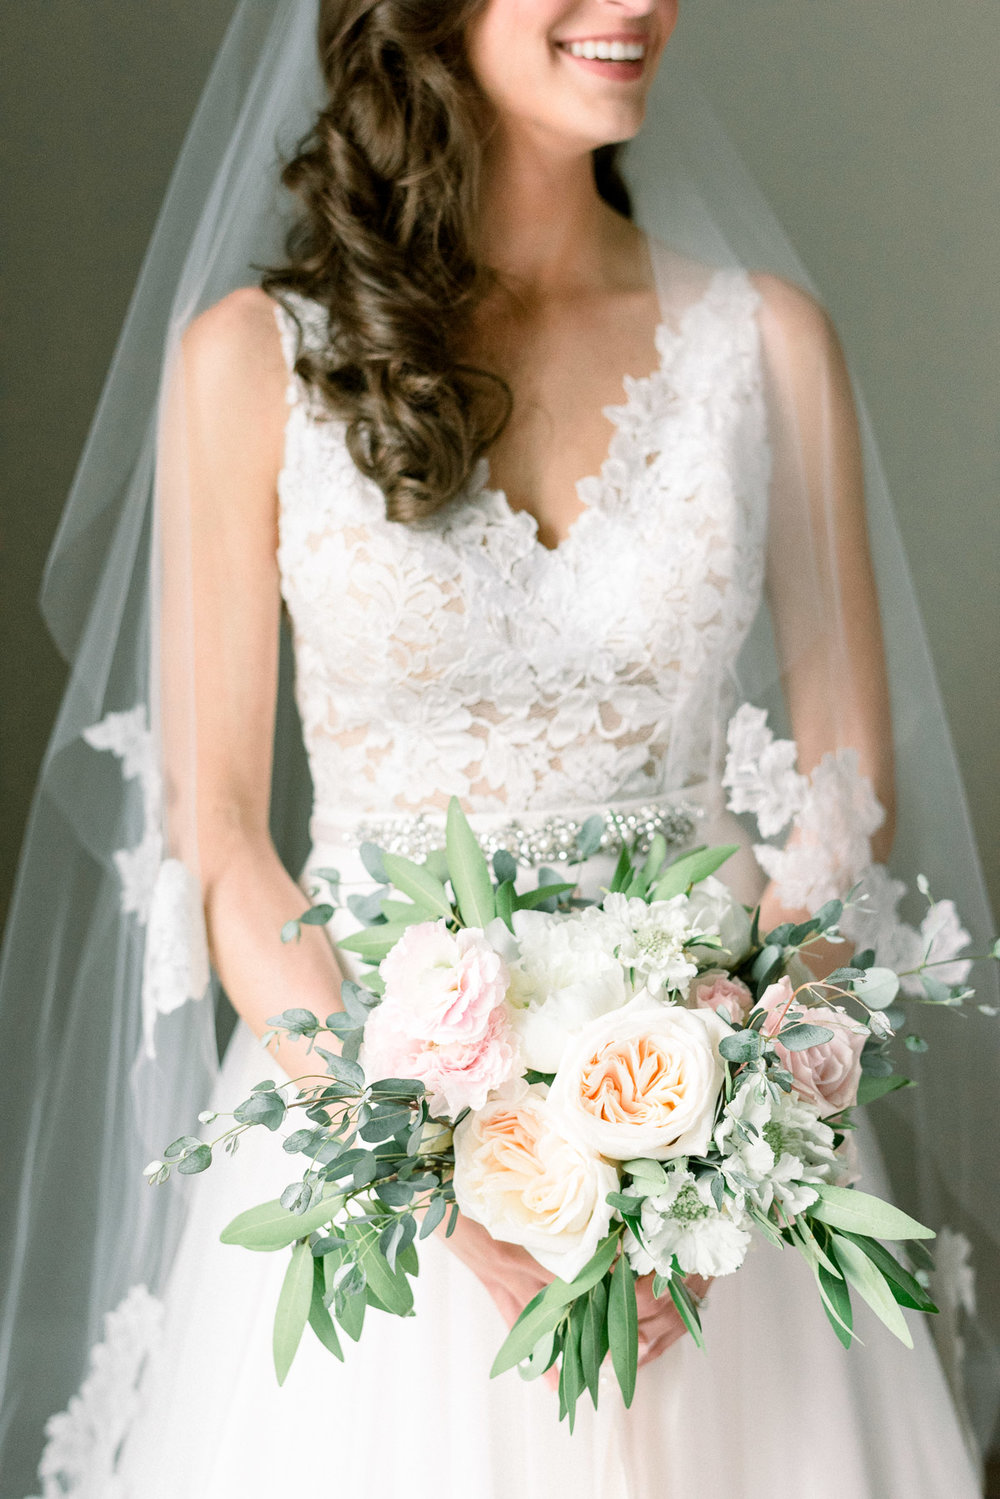 Wedding Bouquet by Renaissance Floral Design